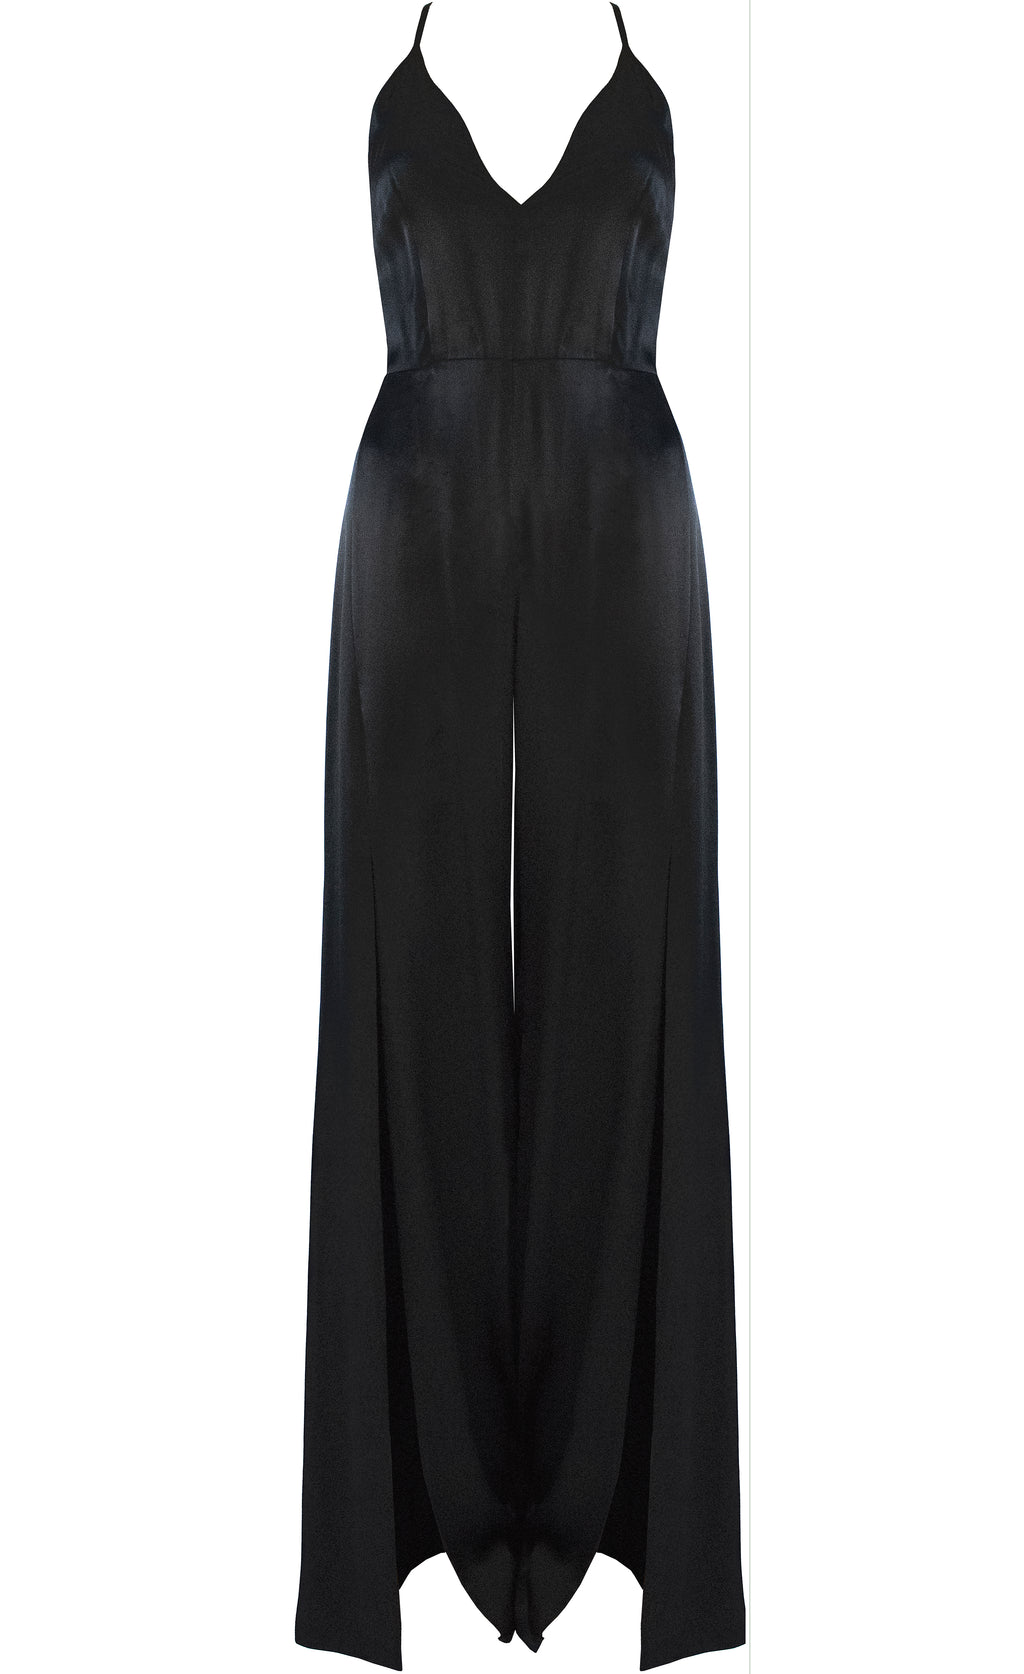 Janelle Sleek-Peek Jumpsuit - KxLNewYork